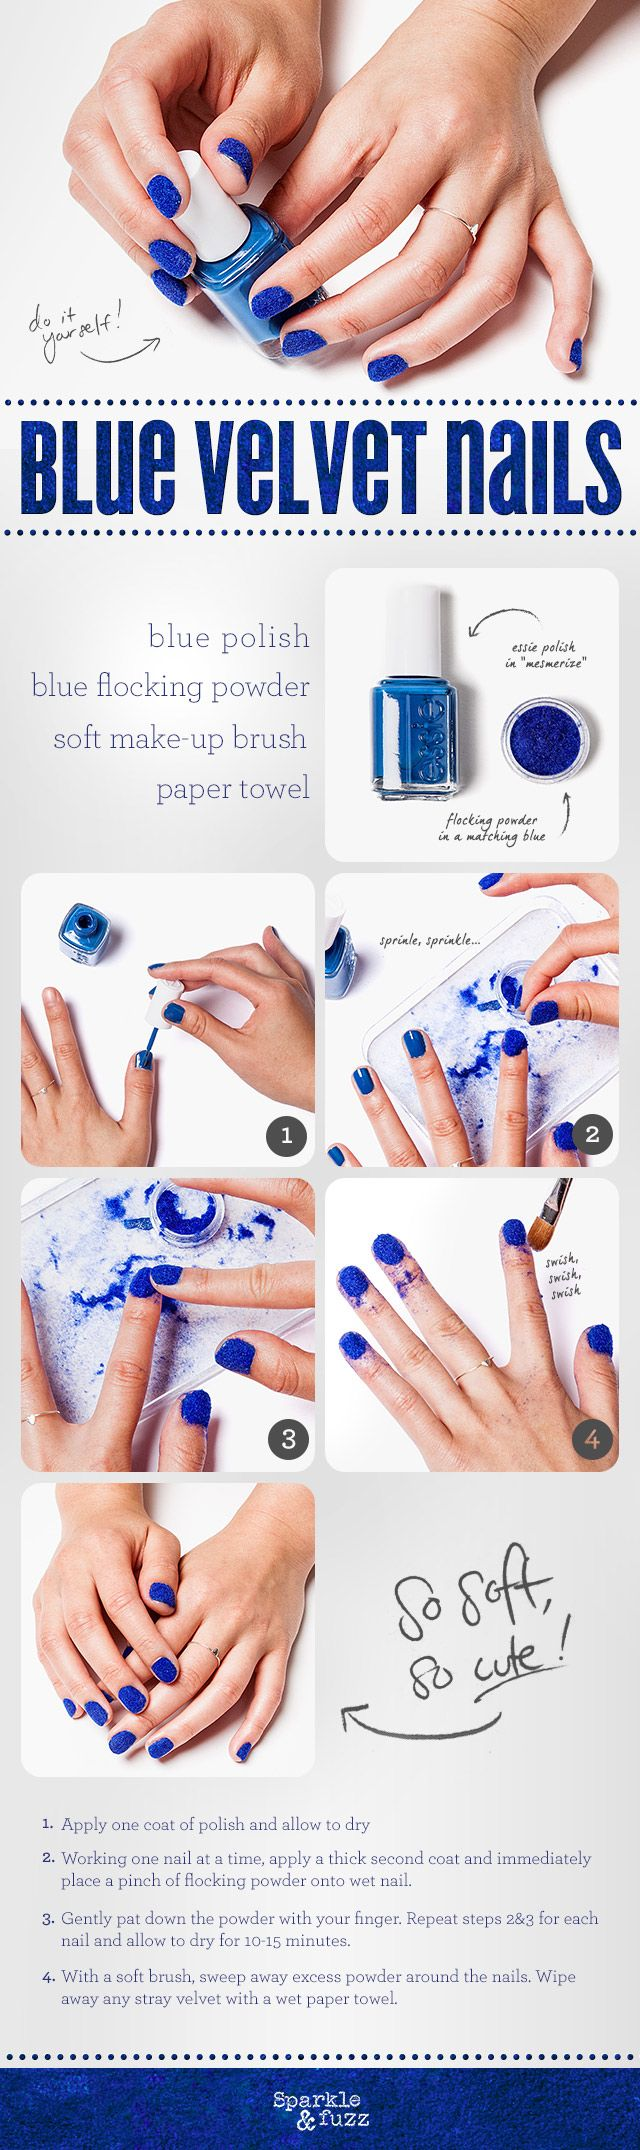 DIY Blue Velvet Nails Pictures, Photos, and Images for Facebook, Tumblr, Pinterest, and Twitter